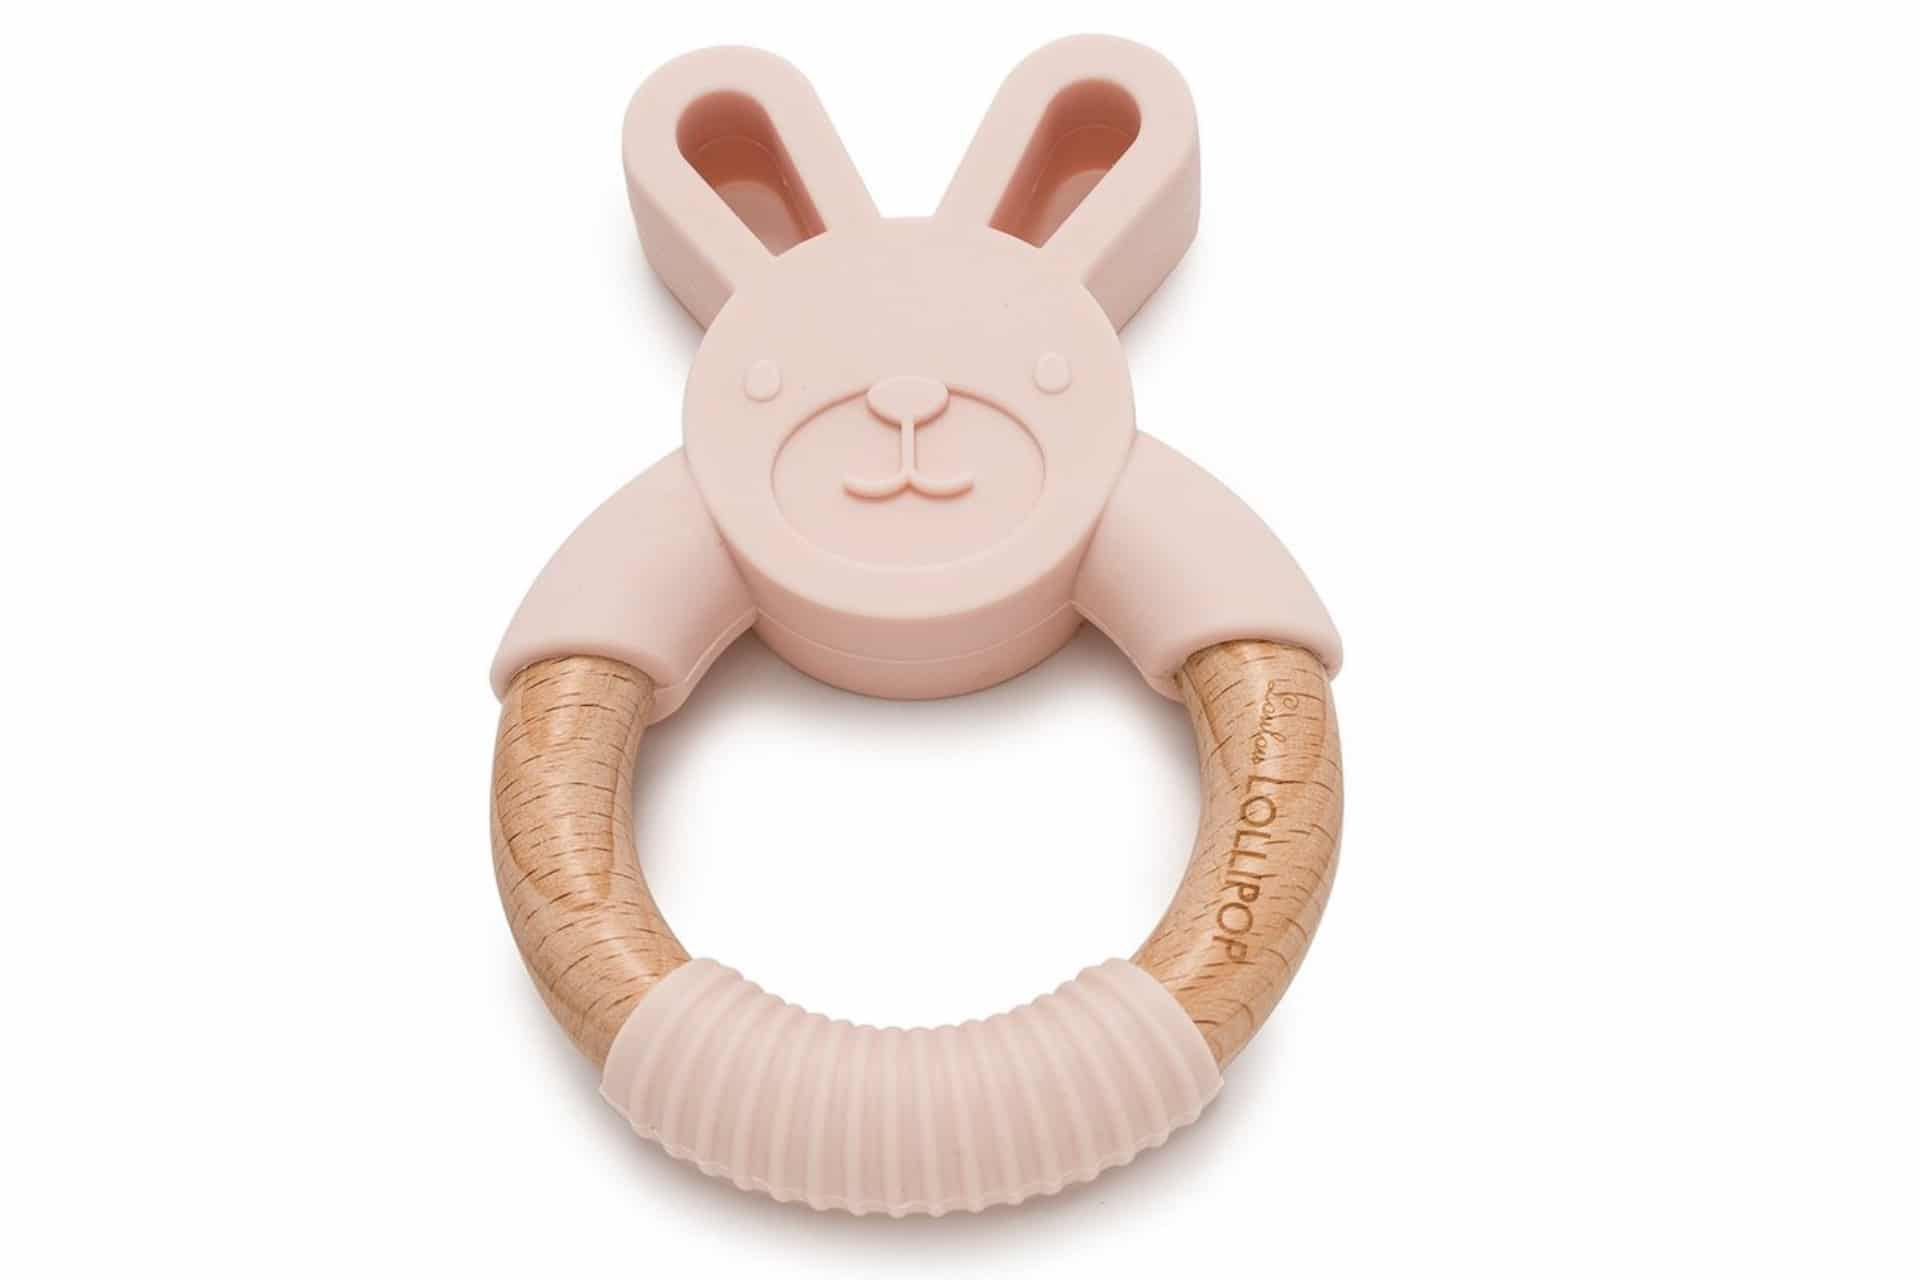 Bunny Silicone and Wood Teether in a light pink